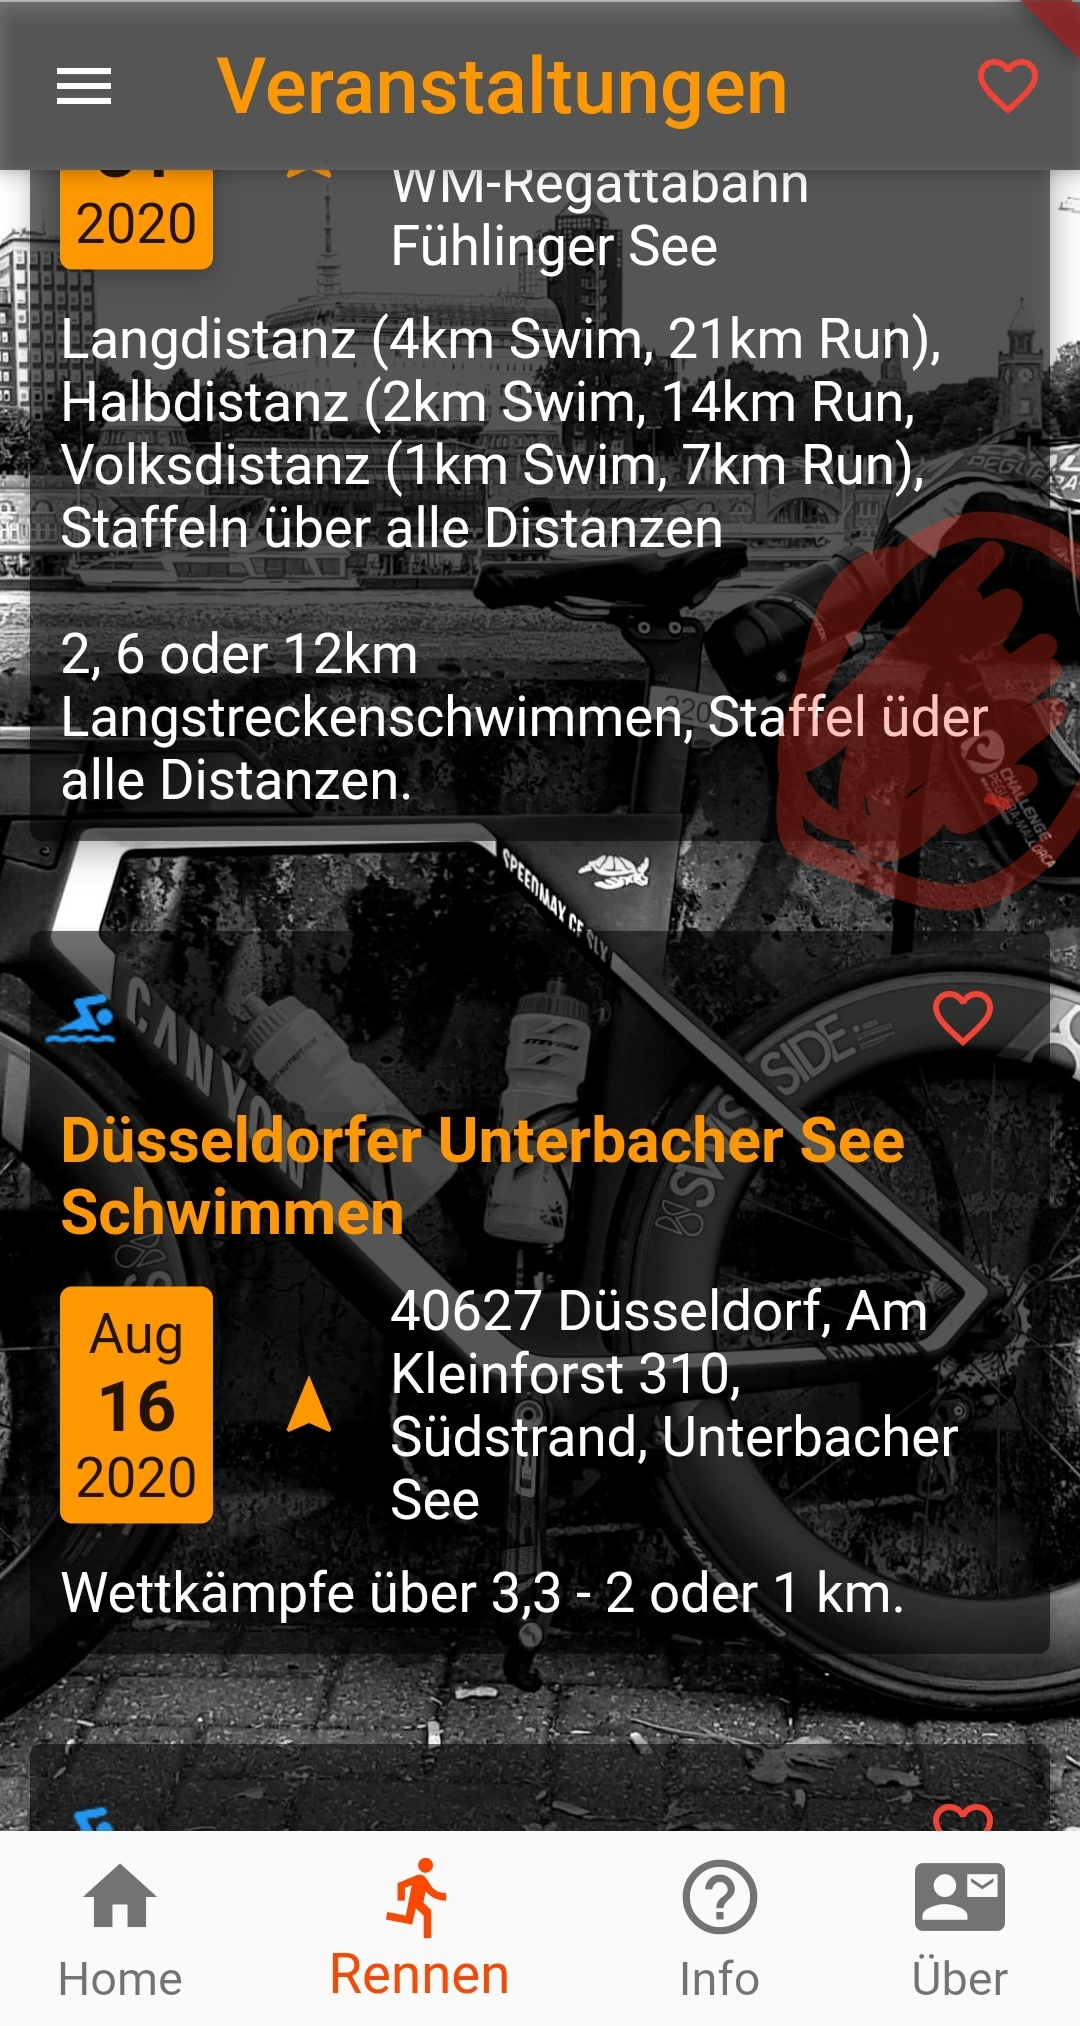 Softwareentwicklung für Android - IOS - Windows - Web 3